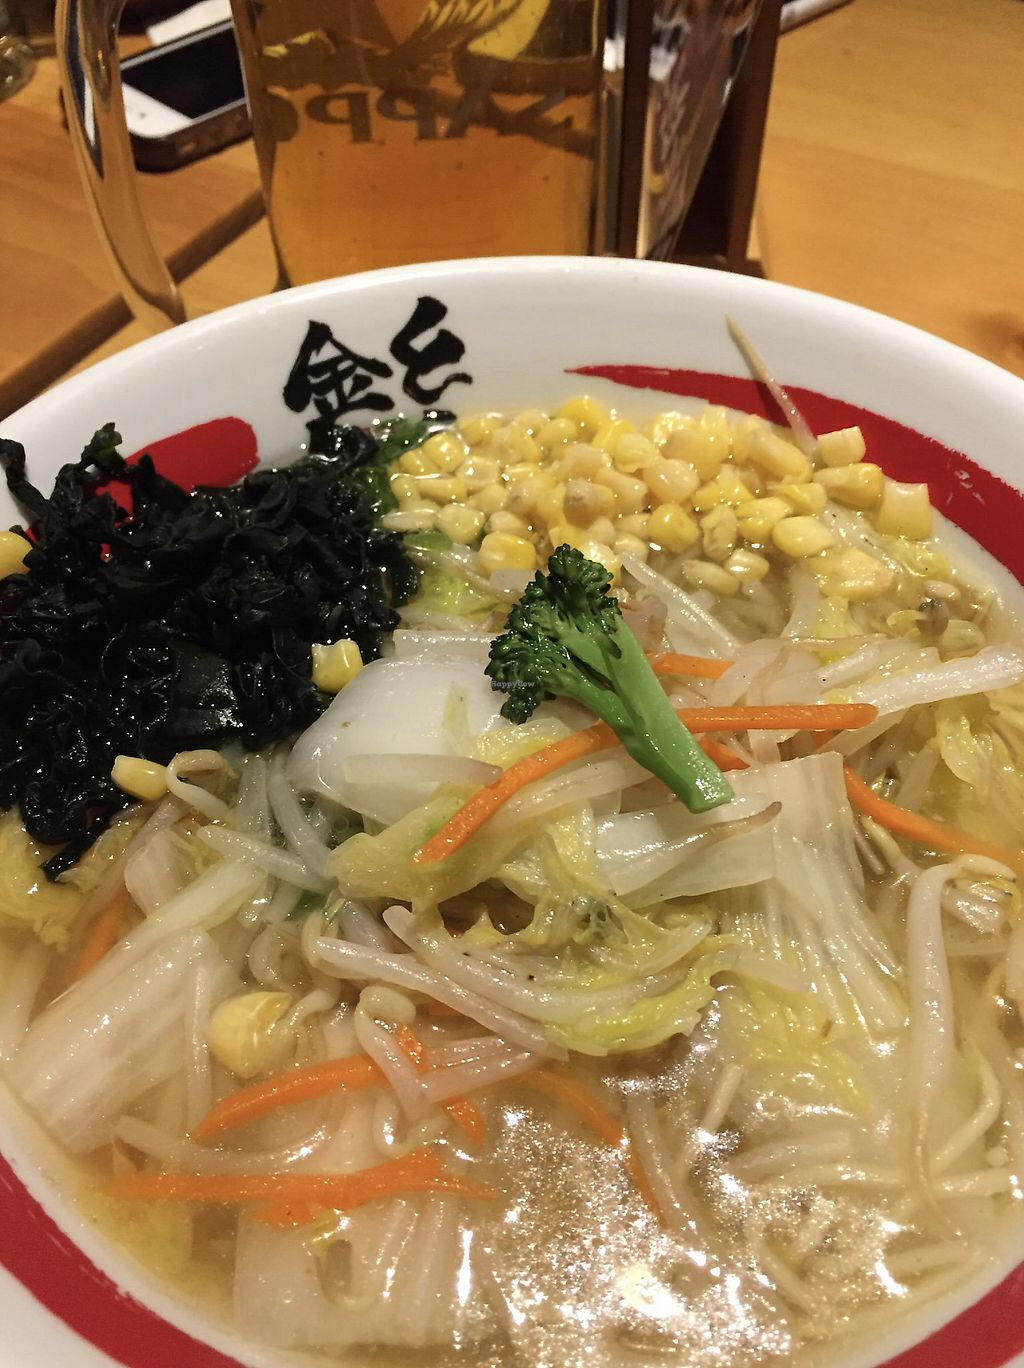 "Photo of Kinton Ramen  by <a href=""/members/profile/EricaEff"">EricaEff</a> <br/>Best vegan ramen EVER! Order the veggie ramen with thin noodles and no tofu (tofu is fried in the same fryer as chicken meat).  <br/> February 11, 2018  - <a href='/contact/abuse/image/111516/358106'>Report</a>"